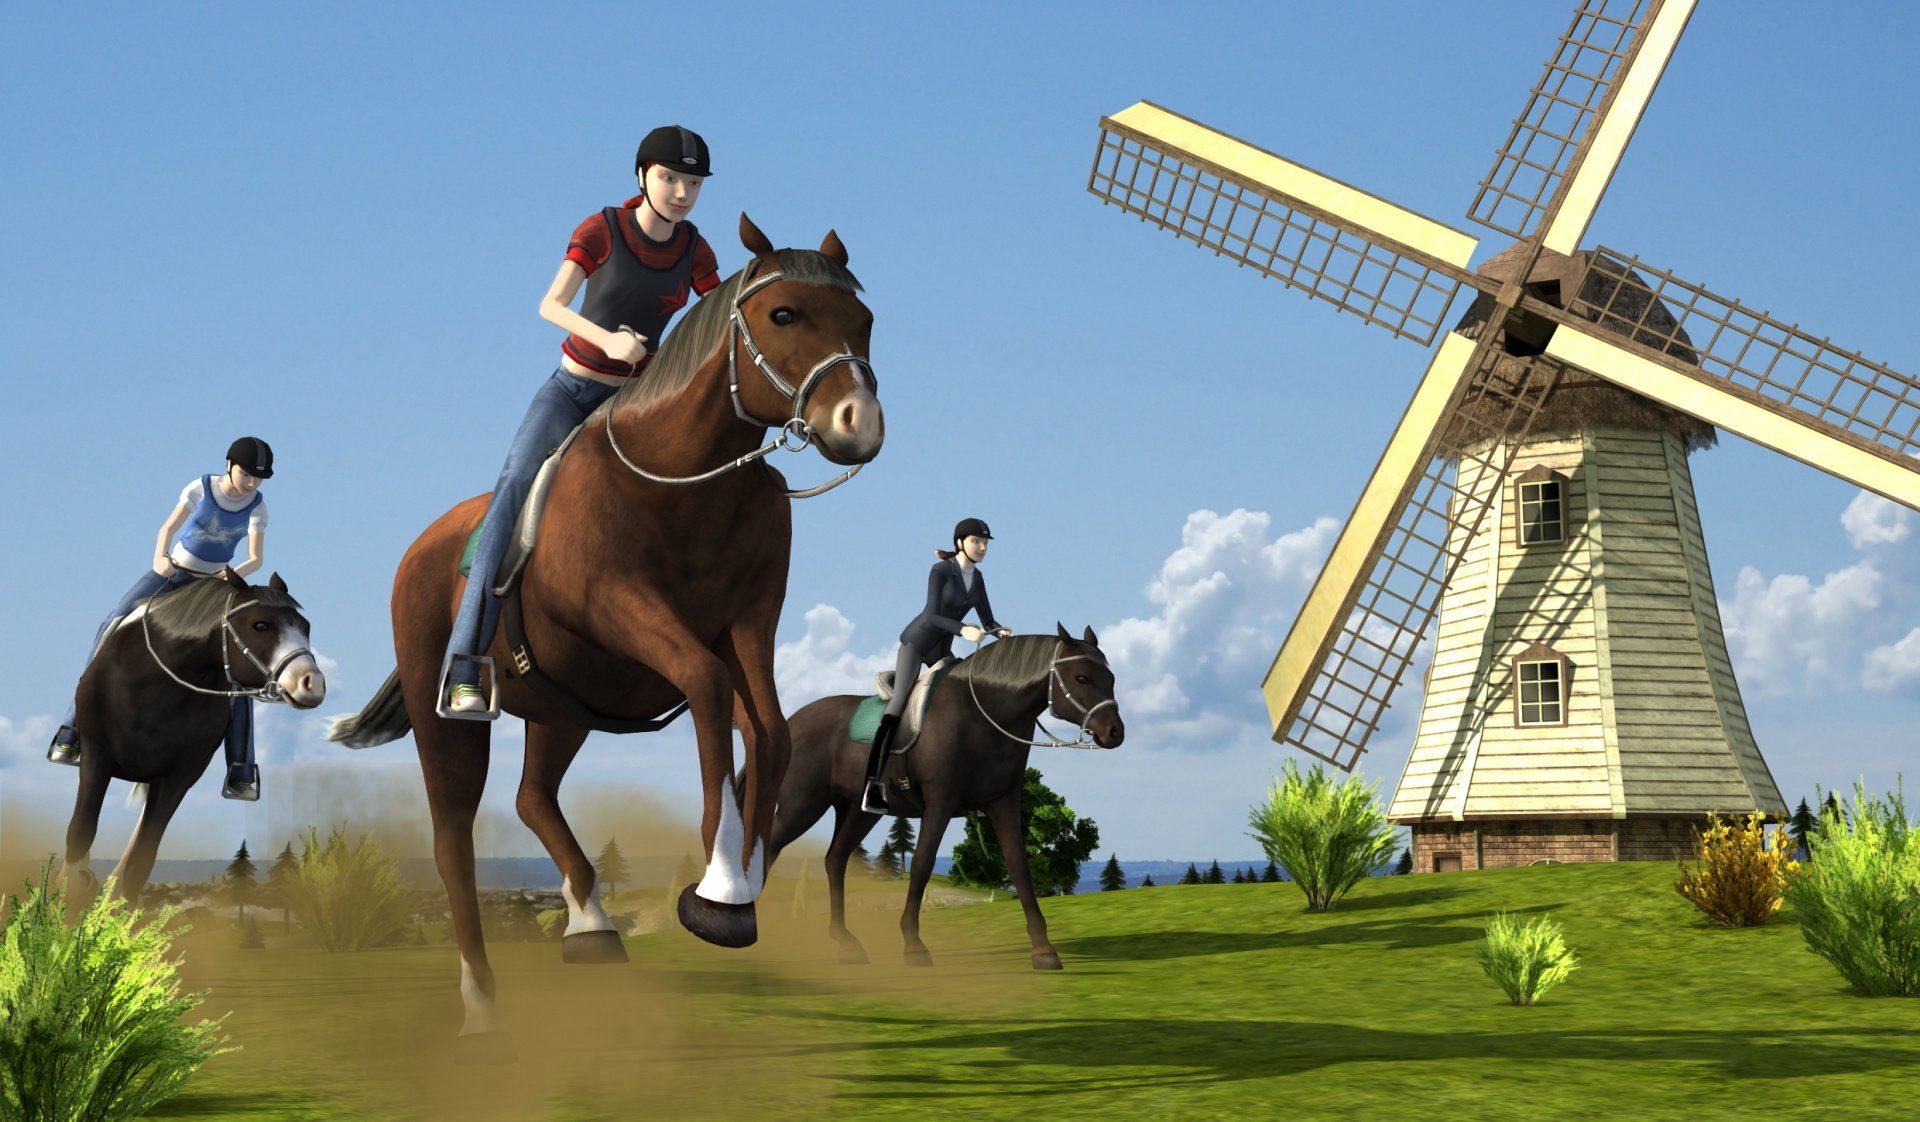 Life with Horses 3D 3DS eShop Game Profile News